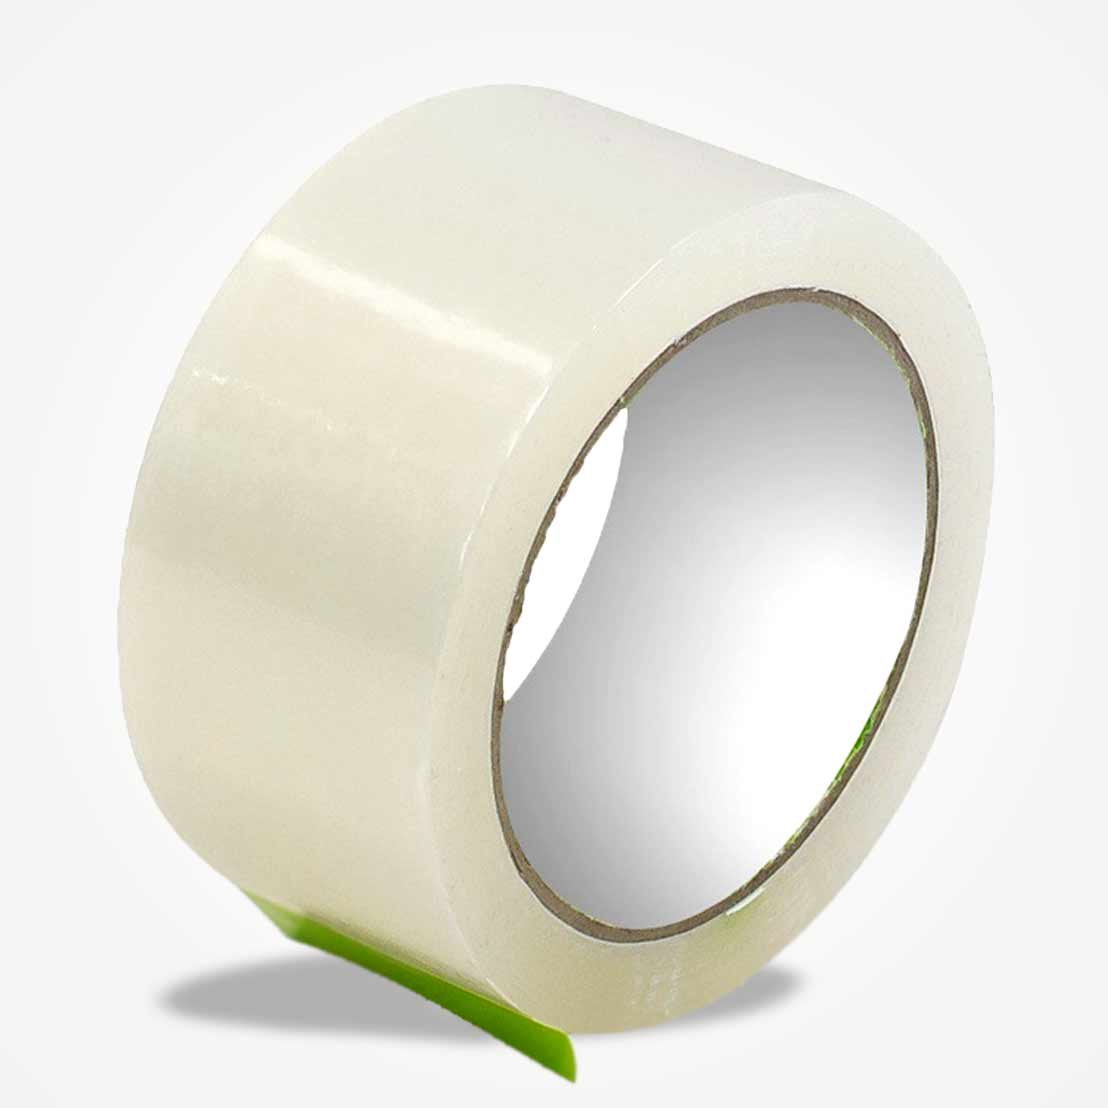 MASKING TAPE 48MM X 50M ROLLS PACKAGING TAPE PACKING BUSINESS OFFICE MOVING HOUS